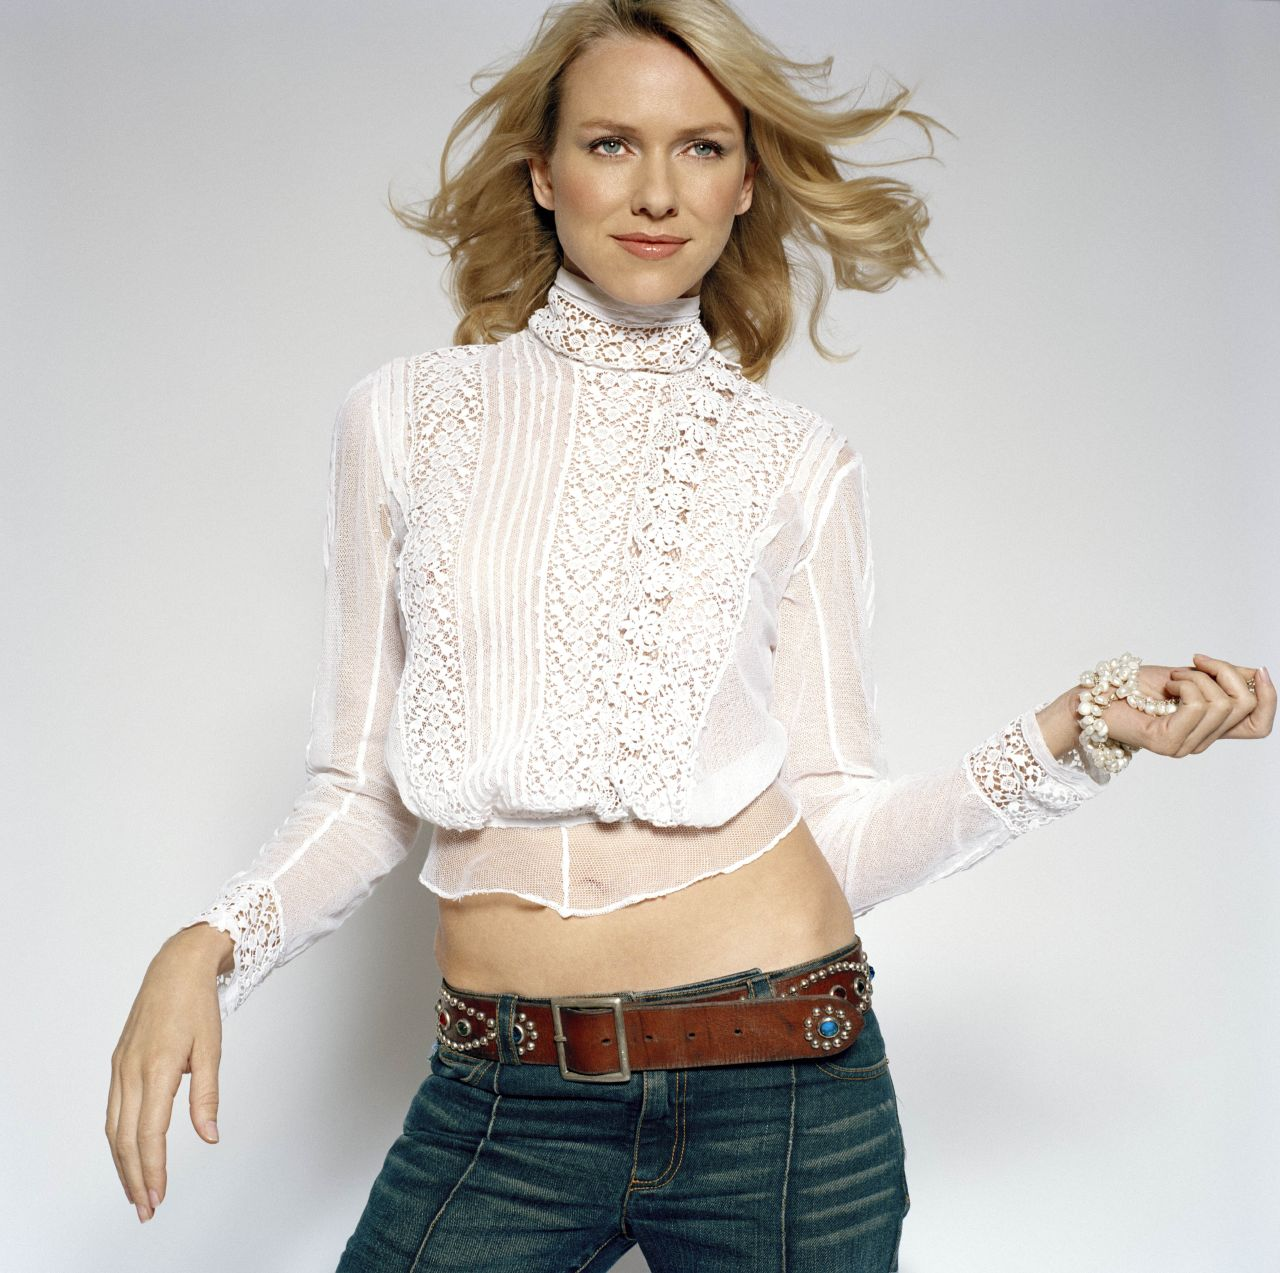 Naomi Watts images et photos